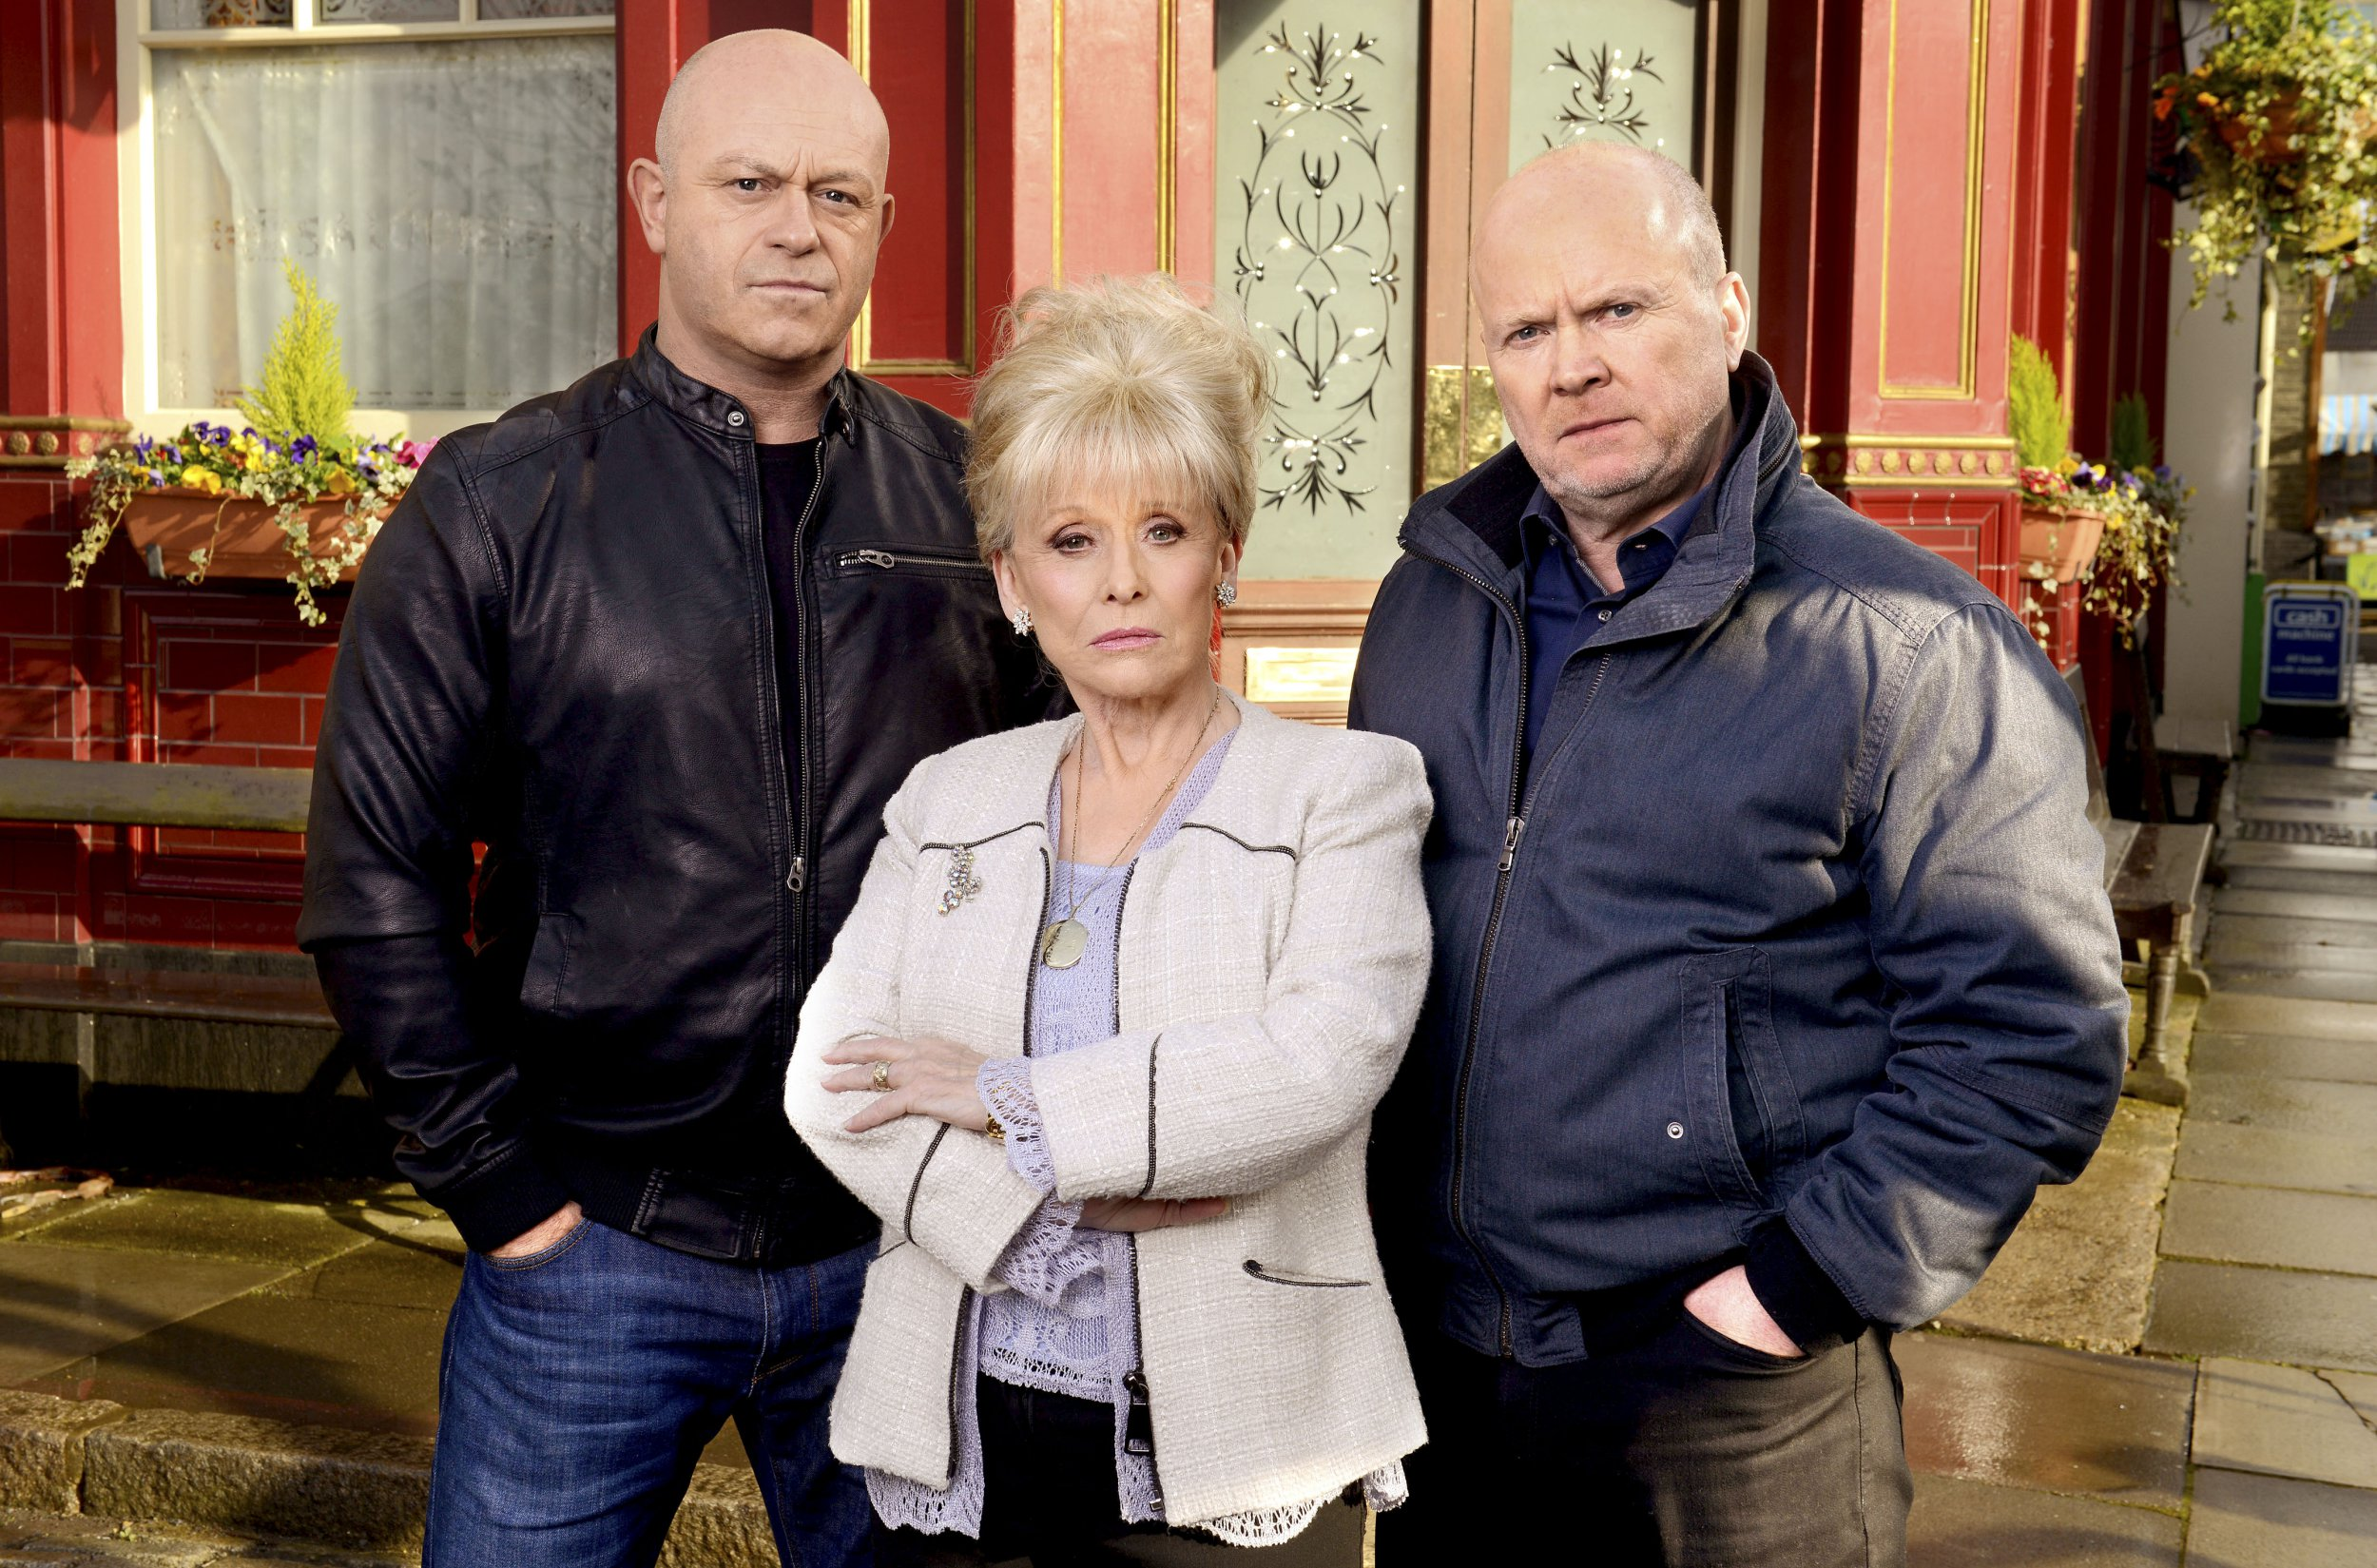 Ross Kemp 'very proud' of Barbara Windsor for going public with Alzheimer's diagnosis